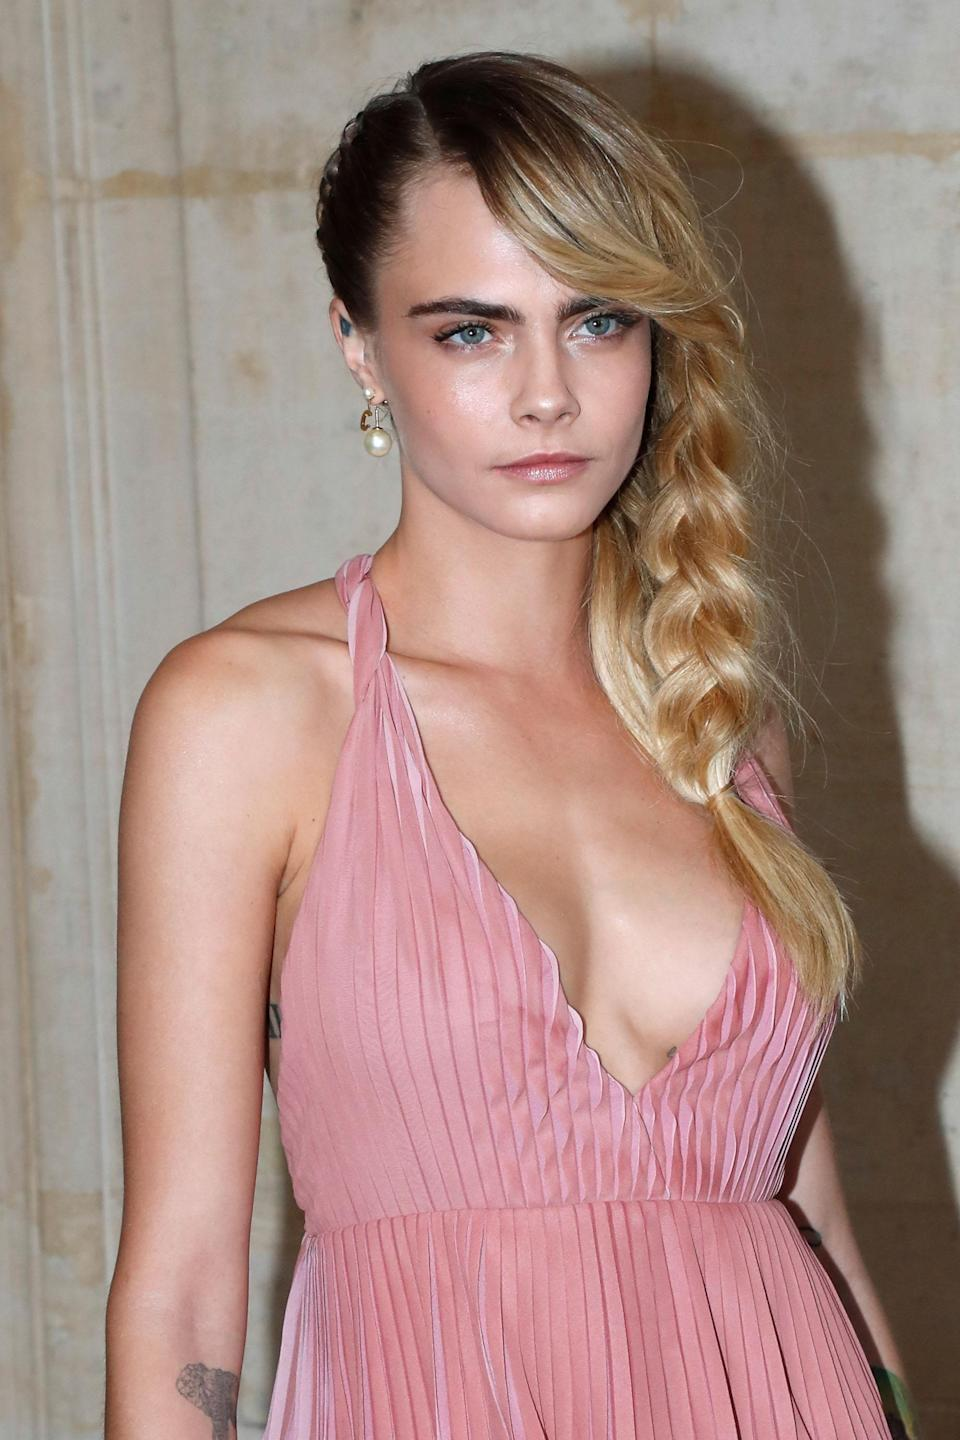 "<h3>Cara Delevingne</h3> <br>For one of the simplest ways to style a French braid, especially if you have lots of layers, make like <a href=""https://www.refinery29.com/en-us/2019/04/230398/cara-delevingne-armpit-hair-instagram-her-smell"" rel=""nofollow noopener"" target=""_blank"" data-ylk=""slk:Cara Delevingne"" class=""link rapid-noclick-resp"">Cara Delevingne</a> and start with a heavy side part. Wind the braid from above one ear around to your other shoulder, leaving out a few pieces or a heavy side bang to keep it looking casual.<span class=""copyright"">Photo: Bertrand Rindoff Petroff/Getty Images. </span><br>"